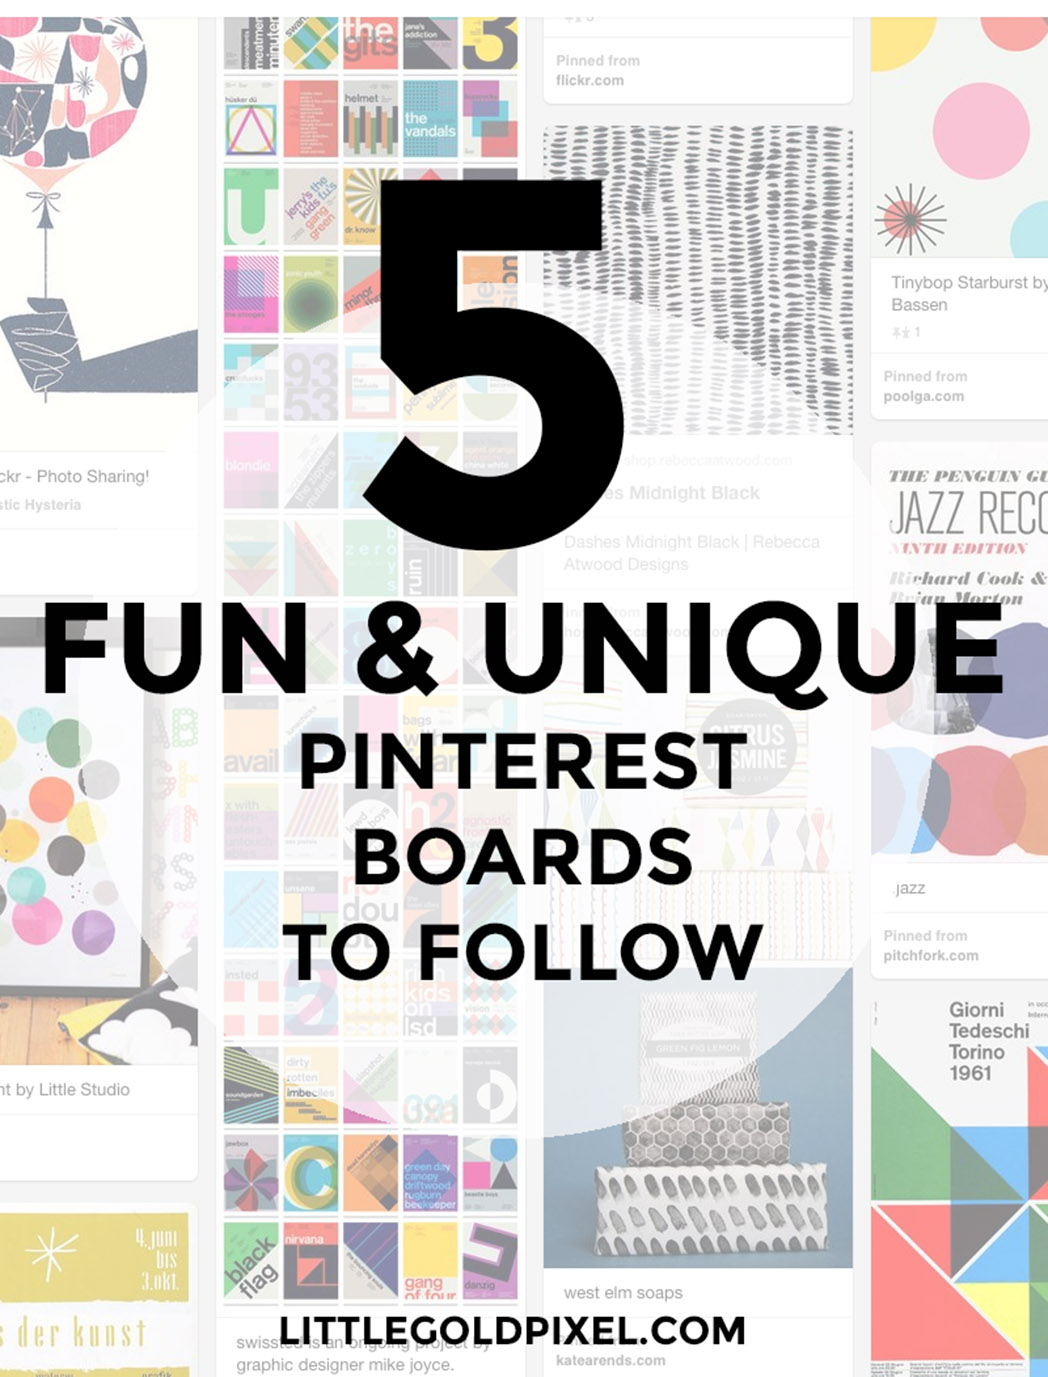 Fun & Unique Pinterest Boards to Follow • Little Gold Pixel